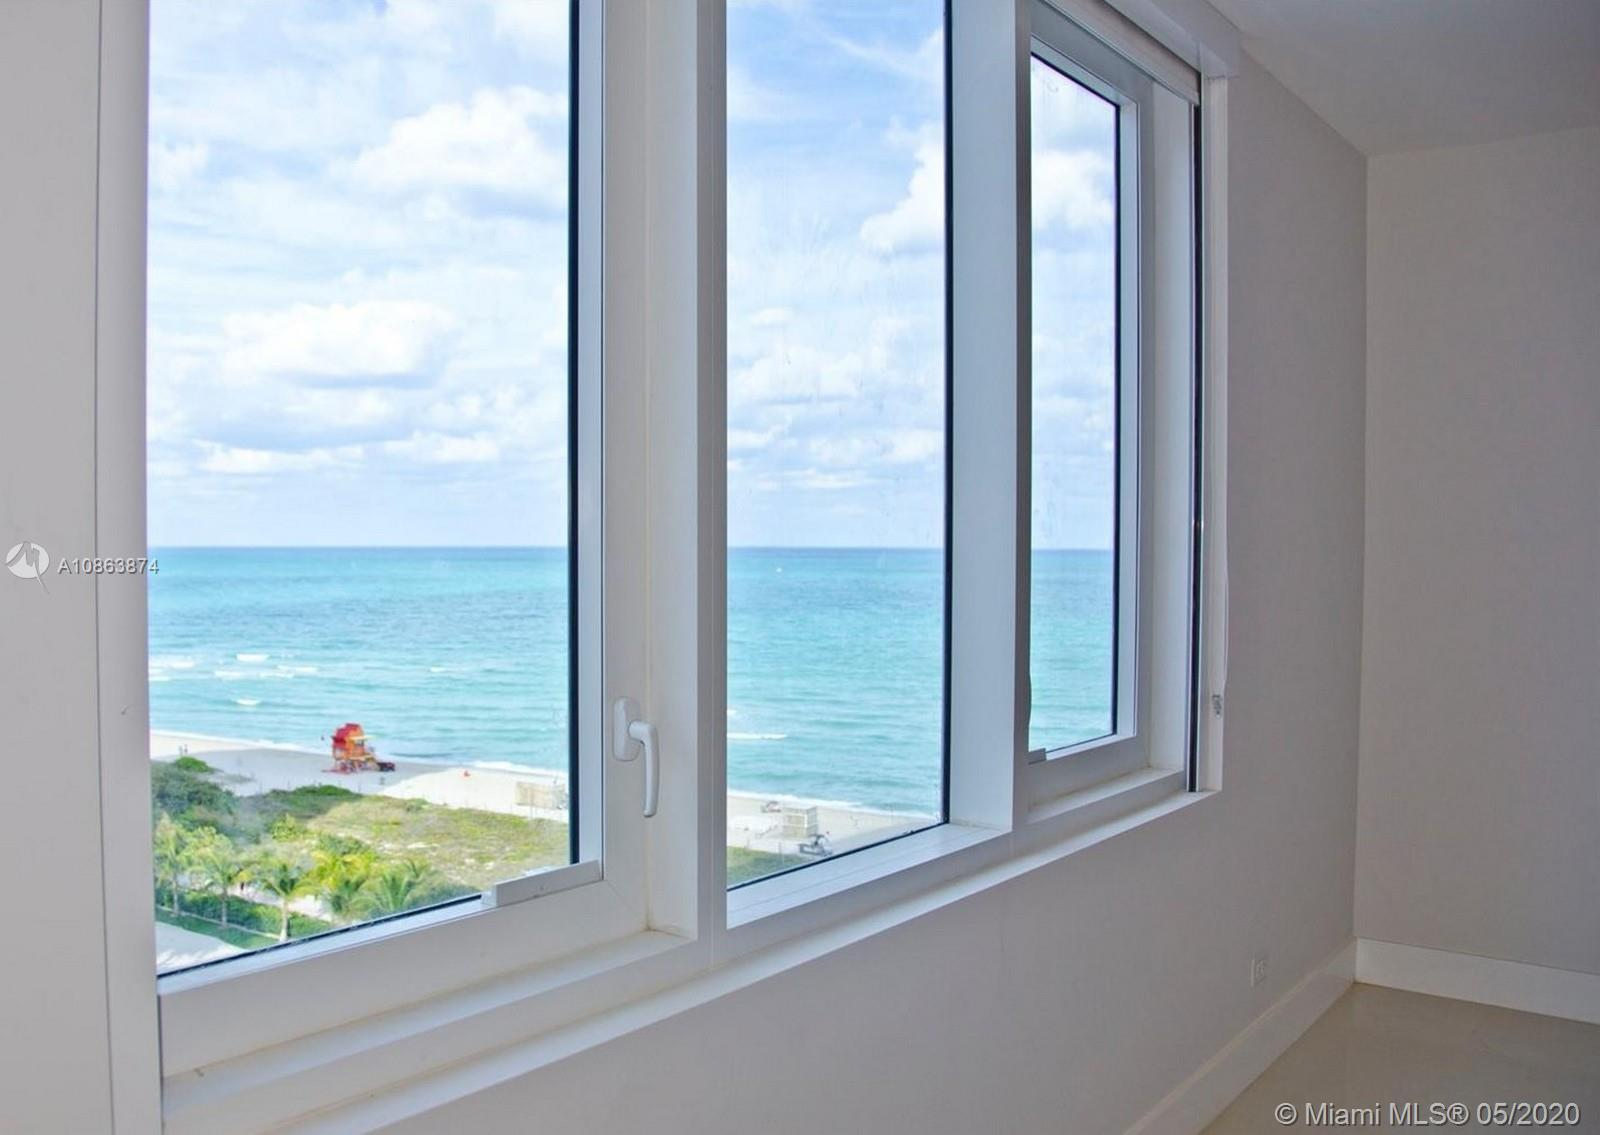 Completely renovated oceanfront condo in the heart of South Beach! This spacious 1 bedroom + den off